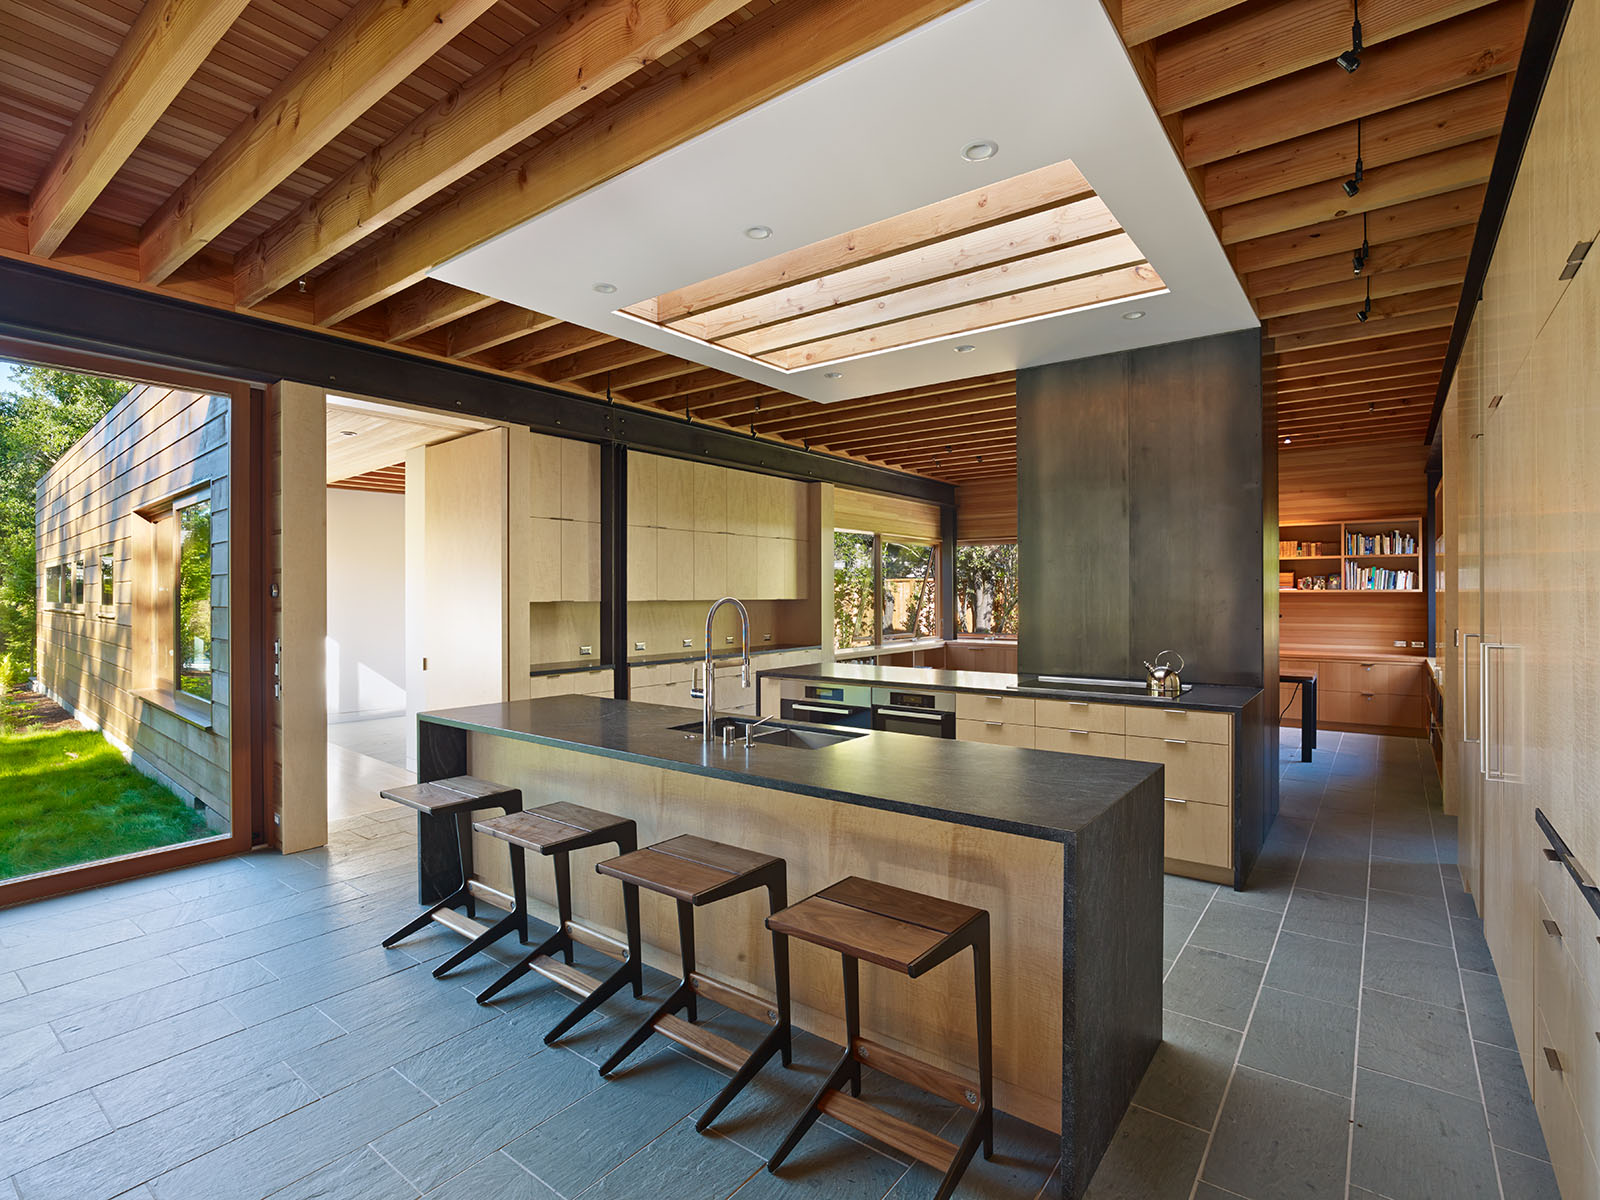 Cuisine Campagnarde En Bois Cotton Residence Bruce Damonte Architectural Photographer